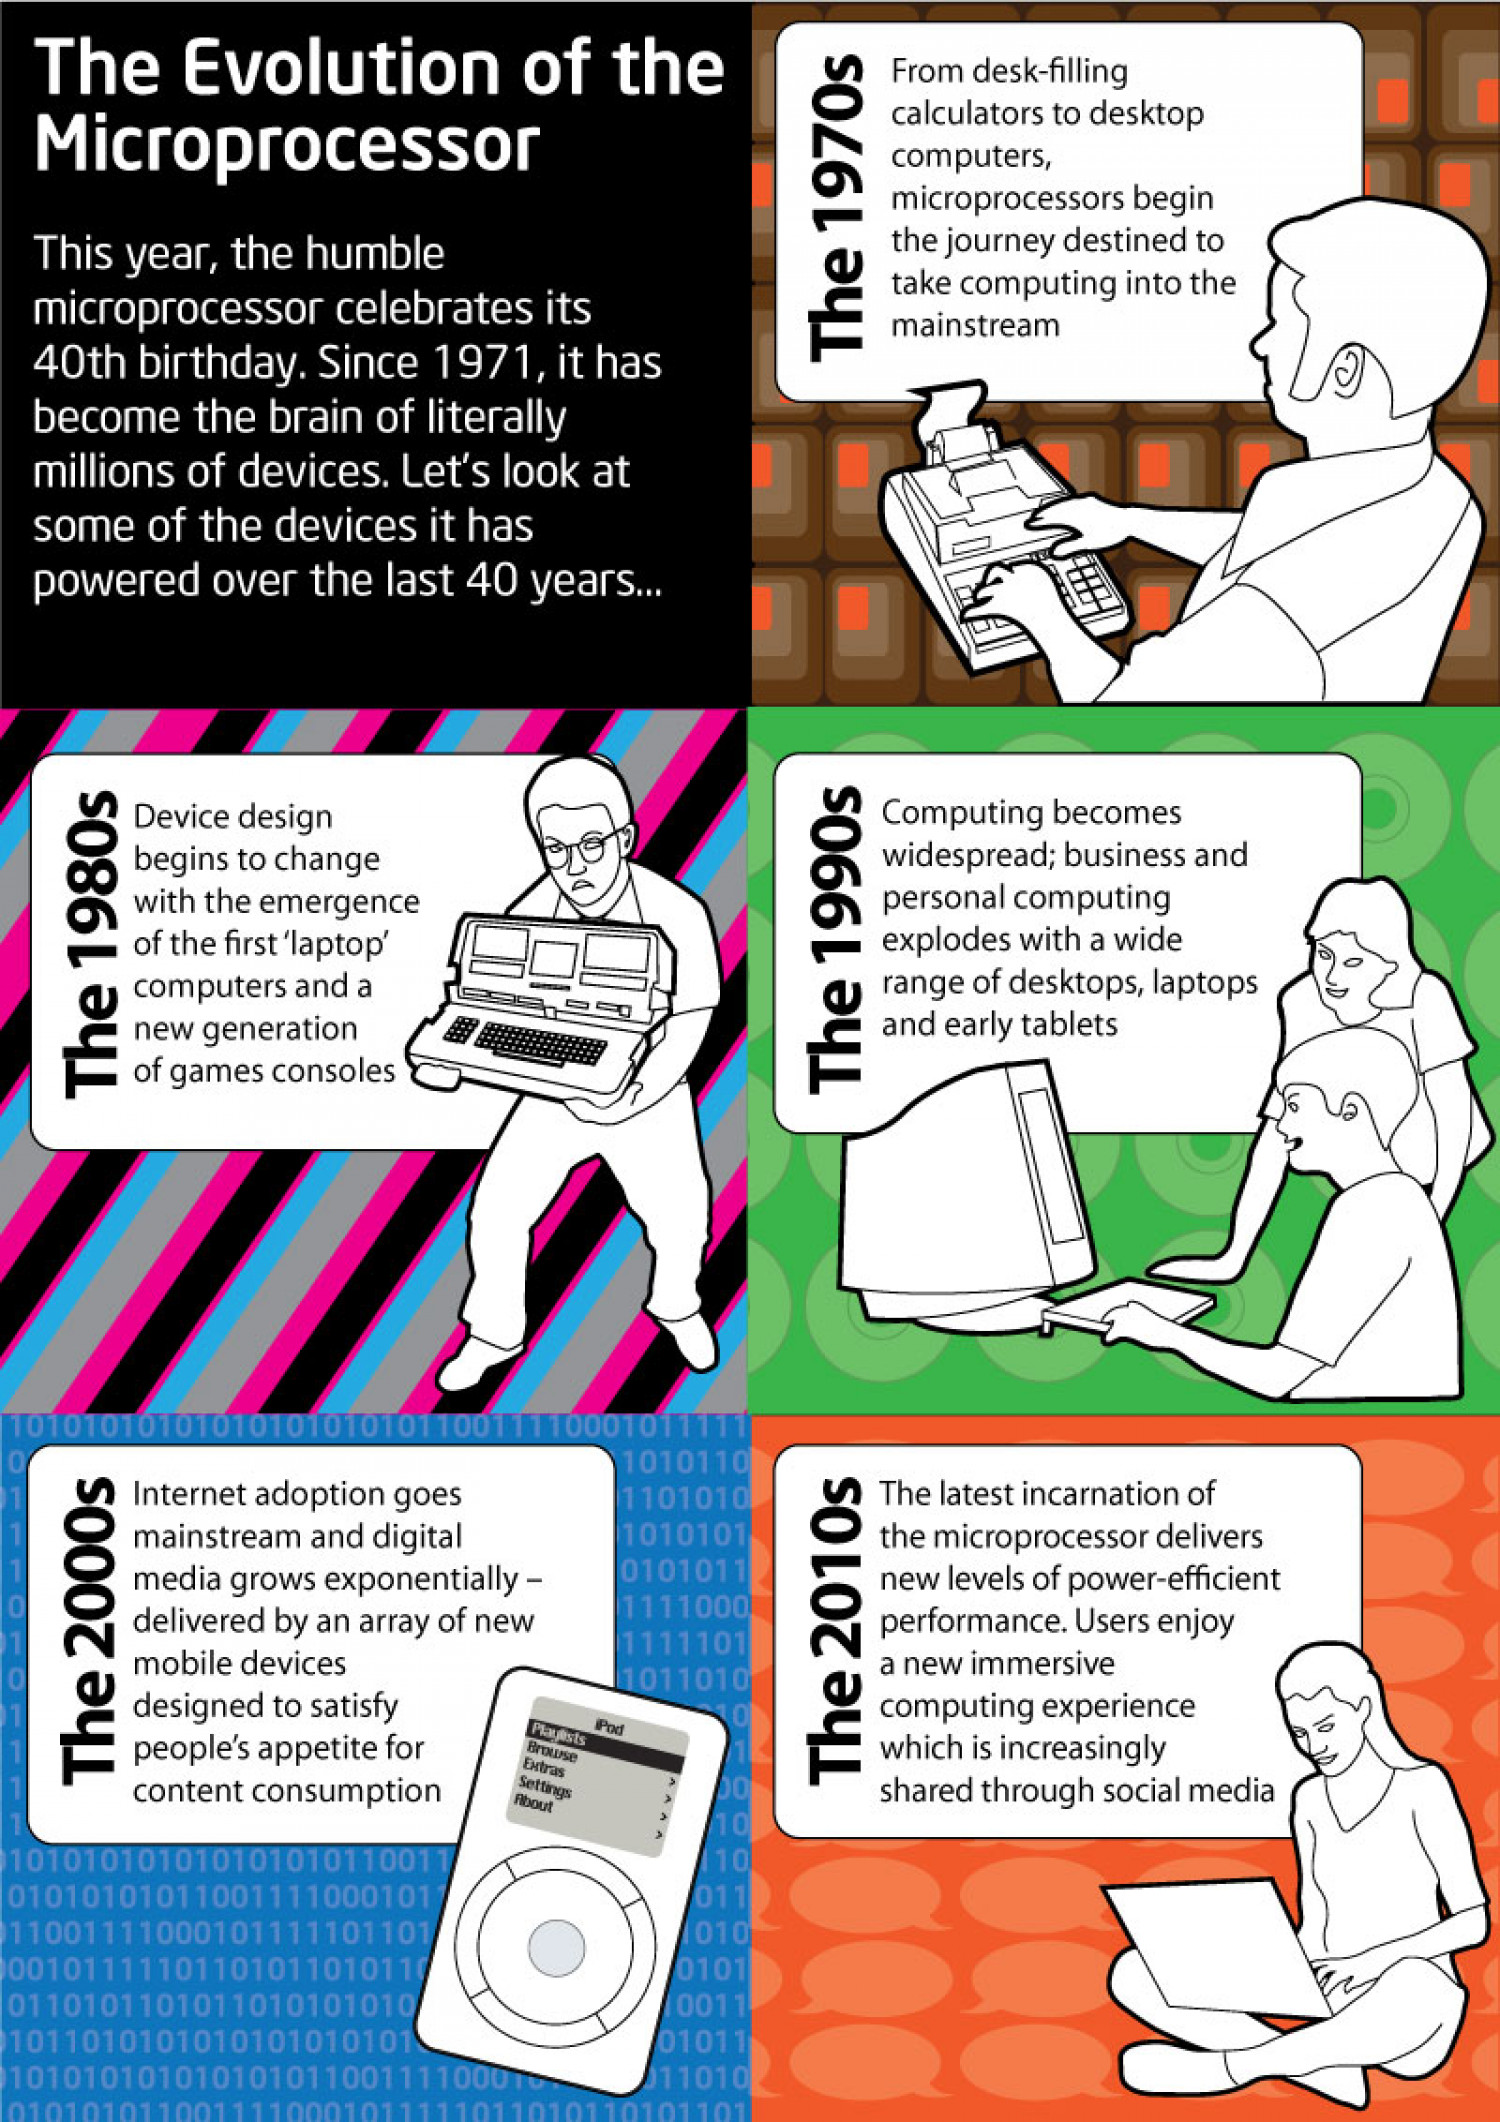 The Evolution of the Microprocessor  Infographic